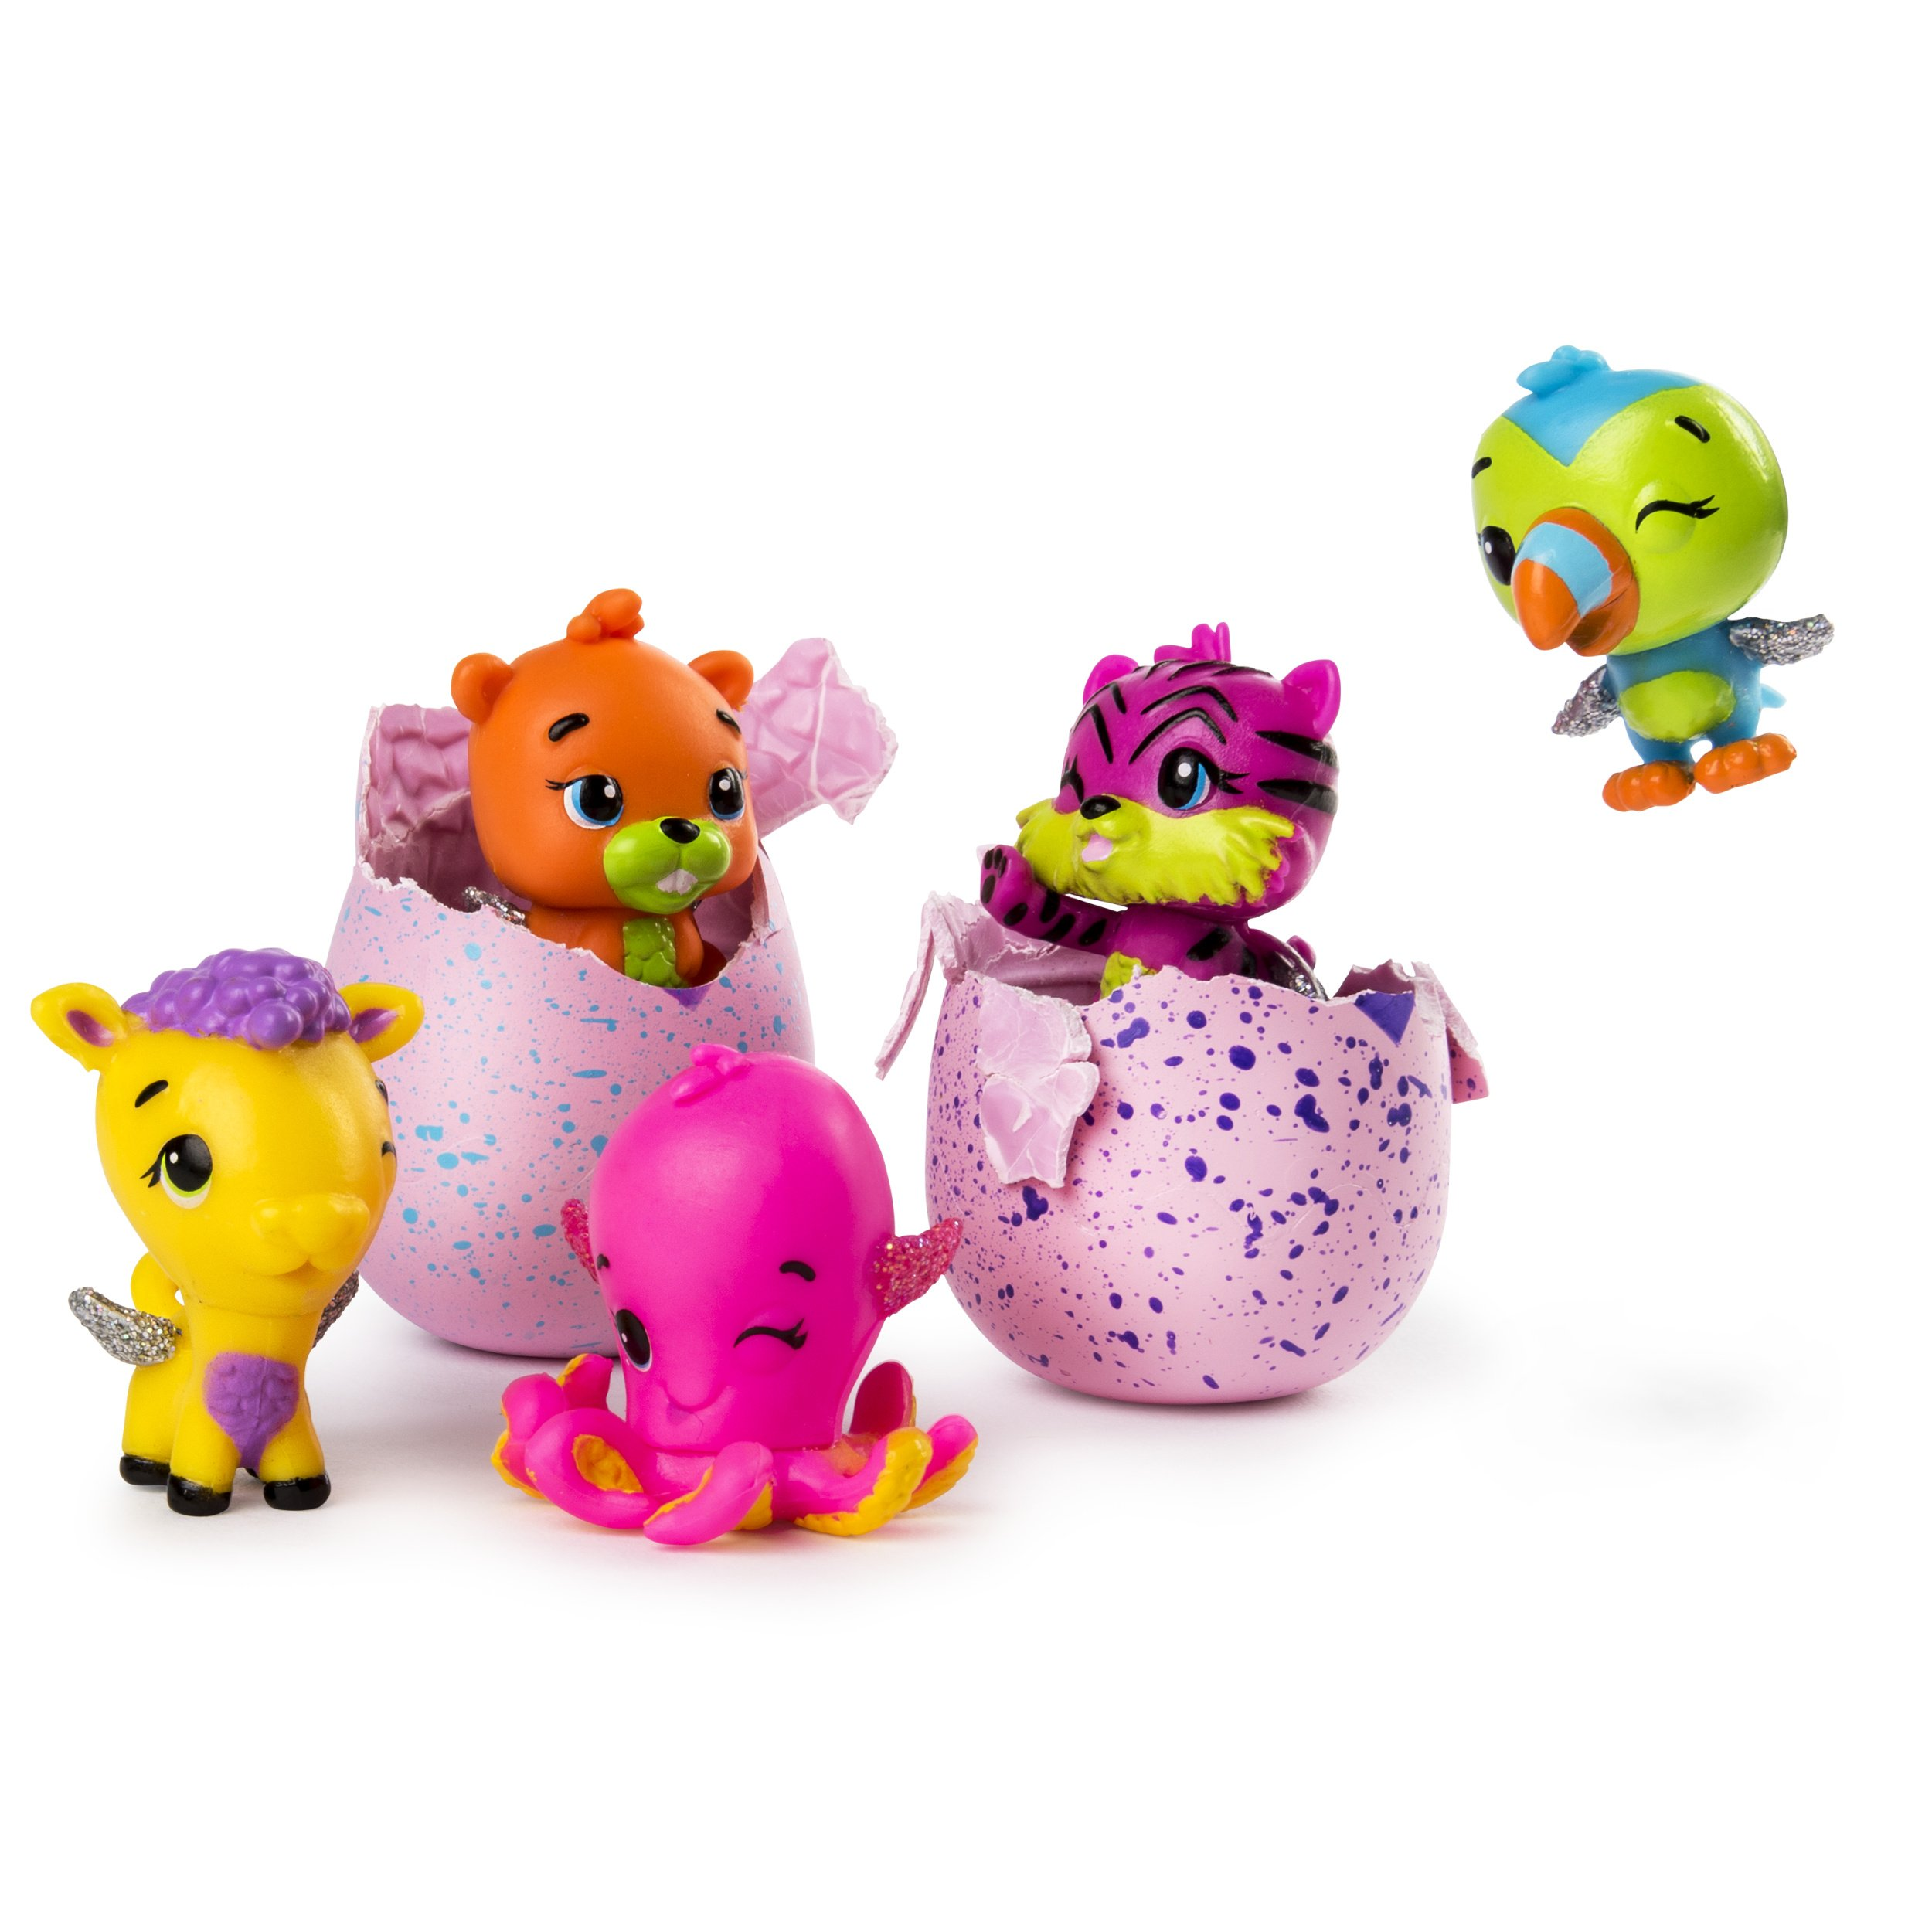 Ages 5+ 100 4 New Spin Master HATCHIMALS Colleggtibles Season 2 To Collect